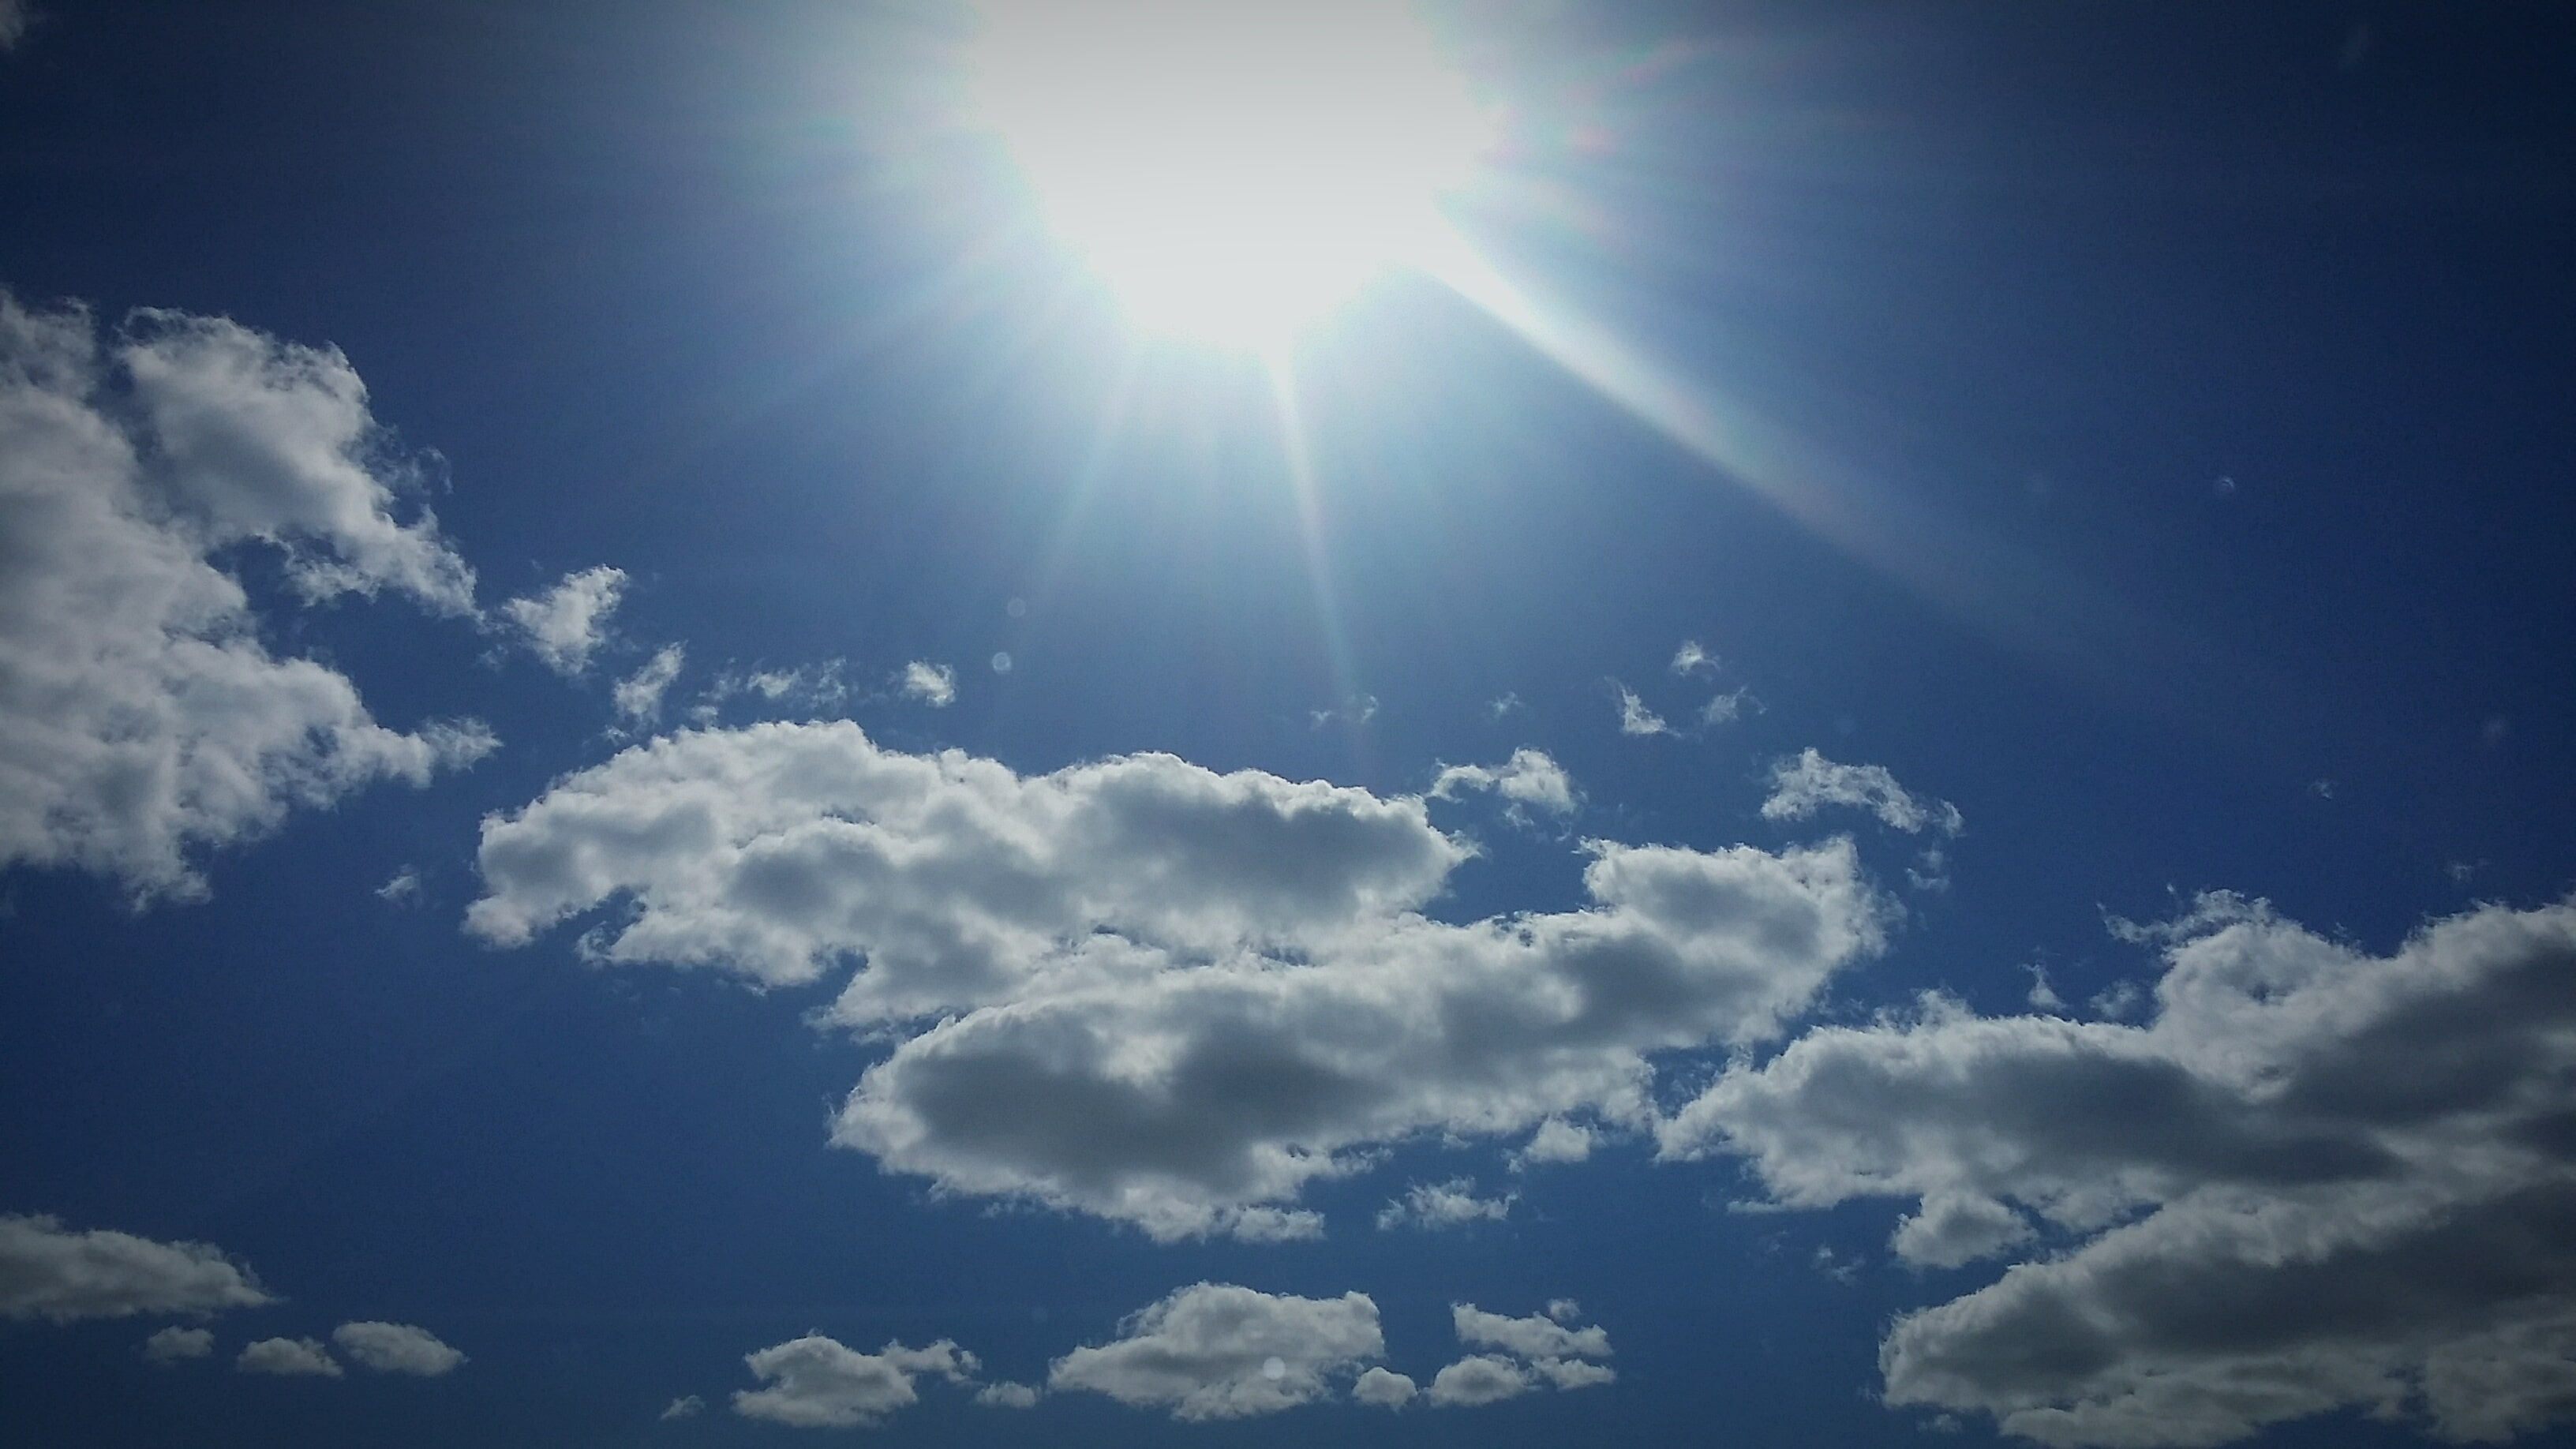 Low Angle View Of Bright Sunshine In Sky